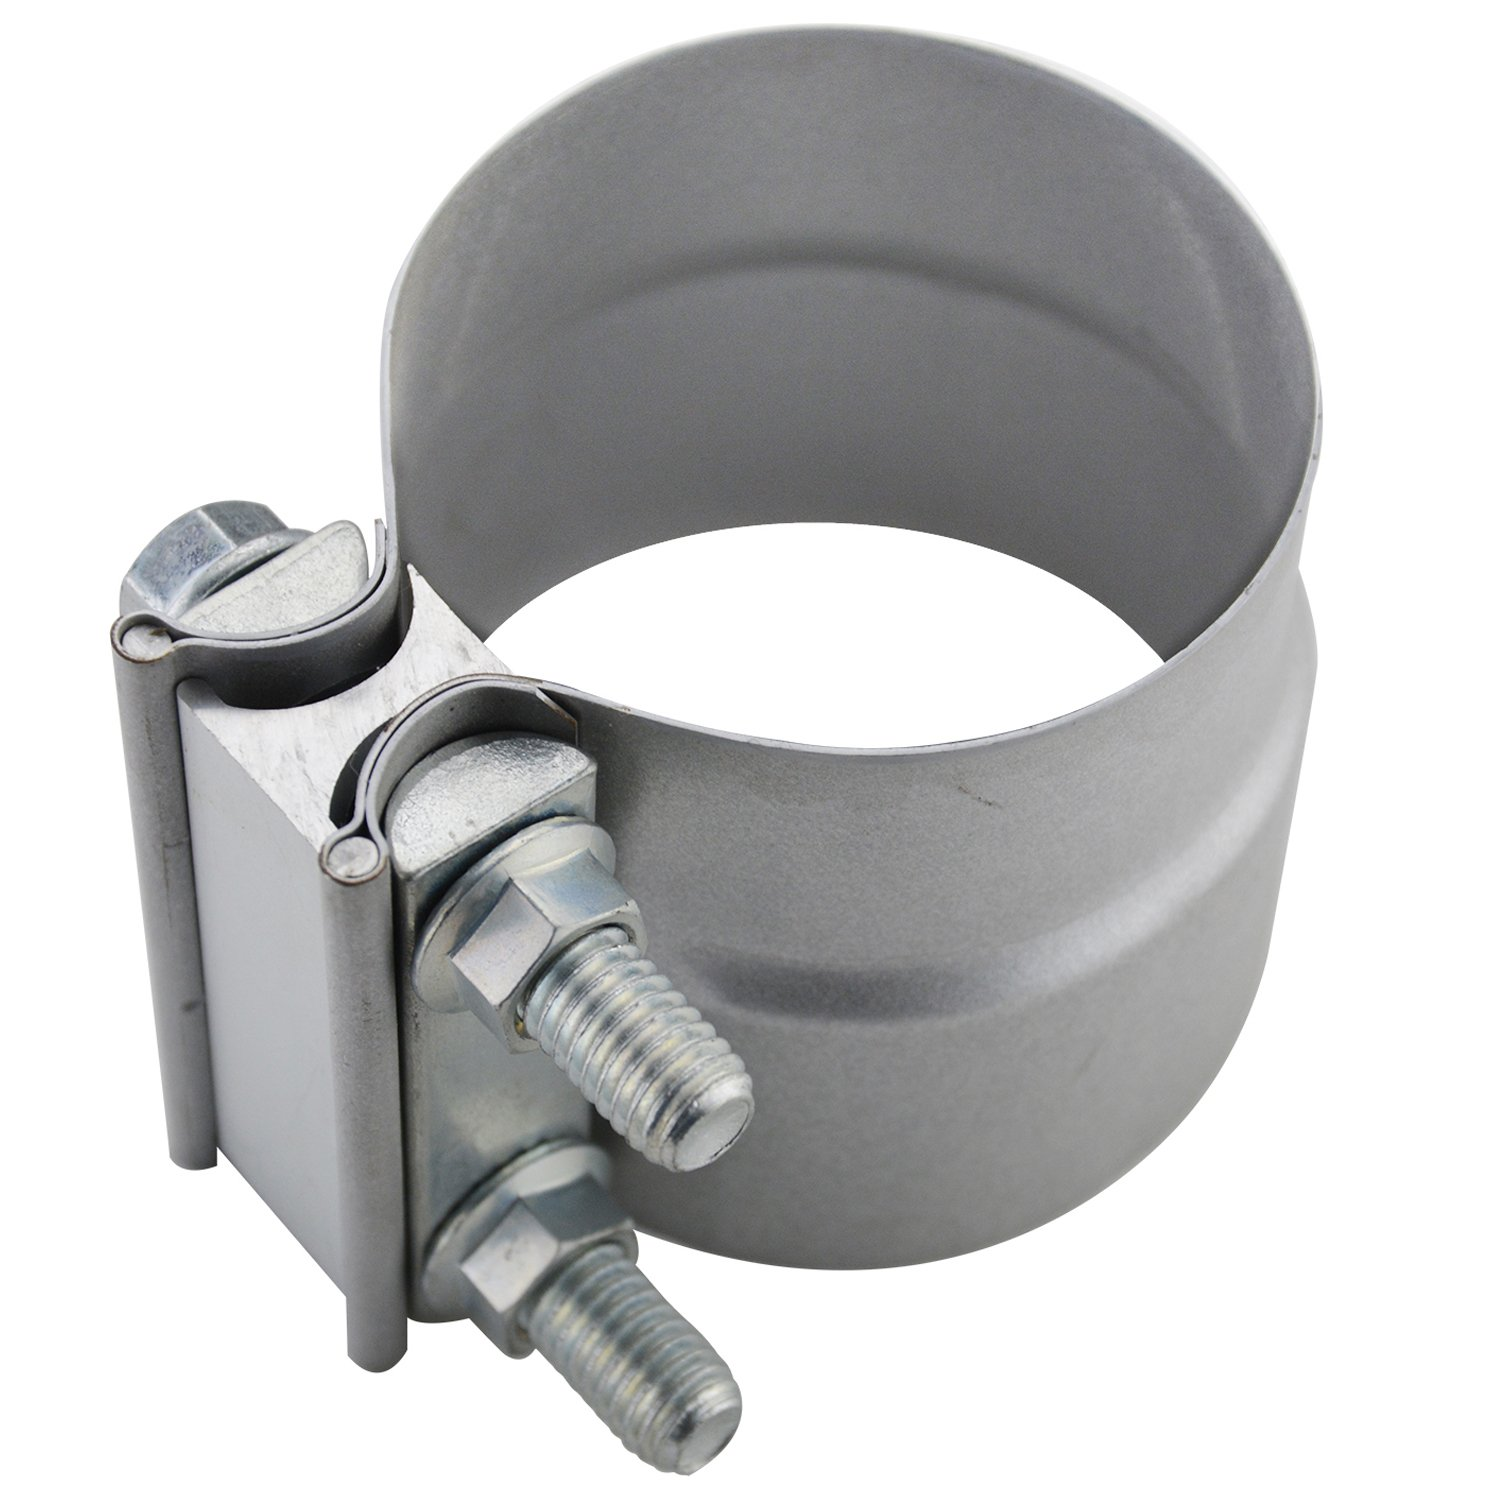 2.75'' Lap Joint Exhaust Band Clamp - Aluminized Steel for 2.75'' OD to 2.75'' ID Exhaust Pipe Connection